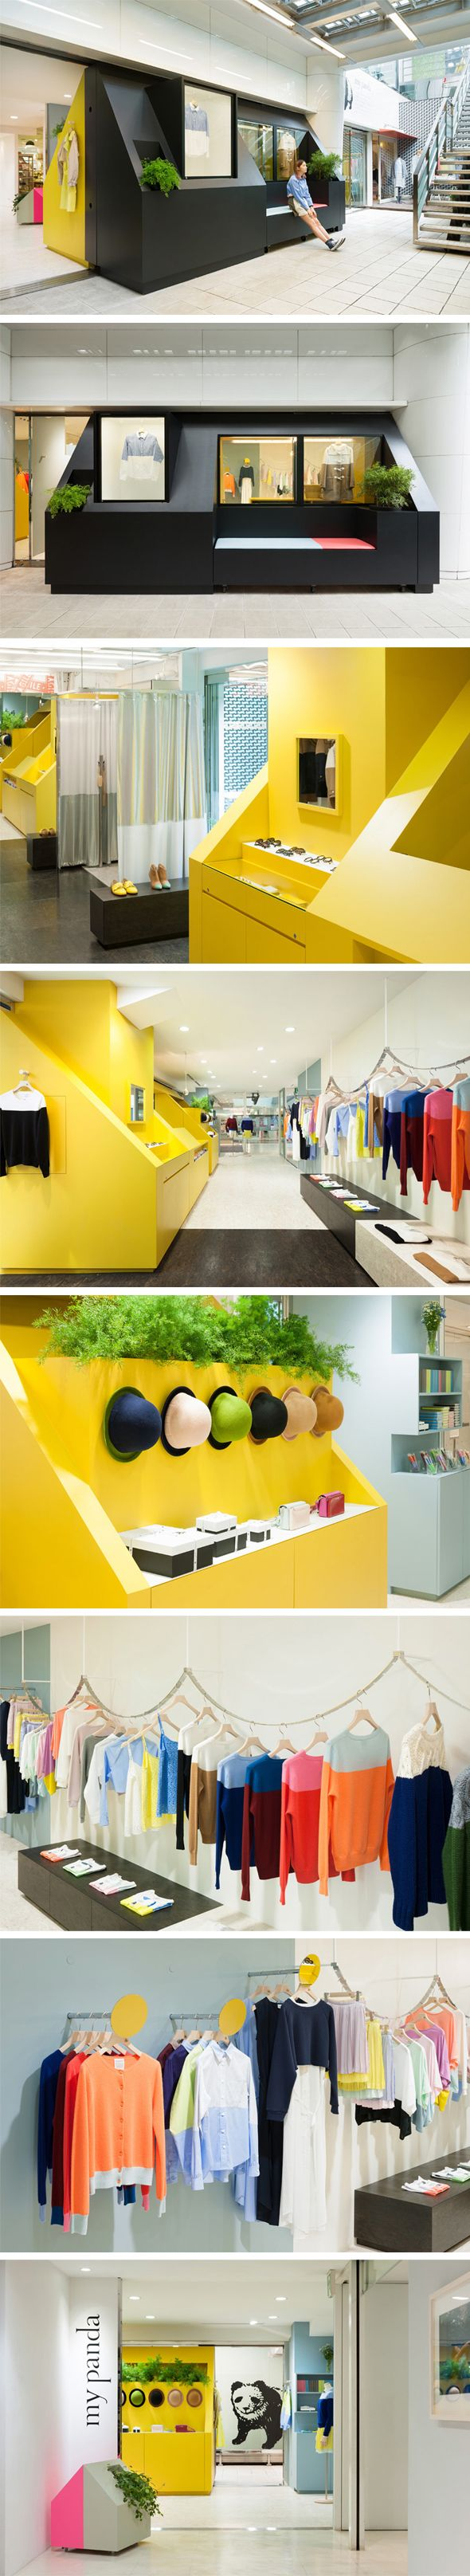 My Panda Retail Store par Torafu Architects